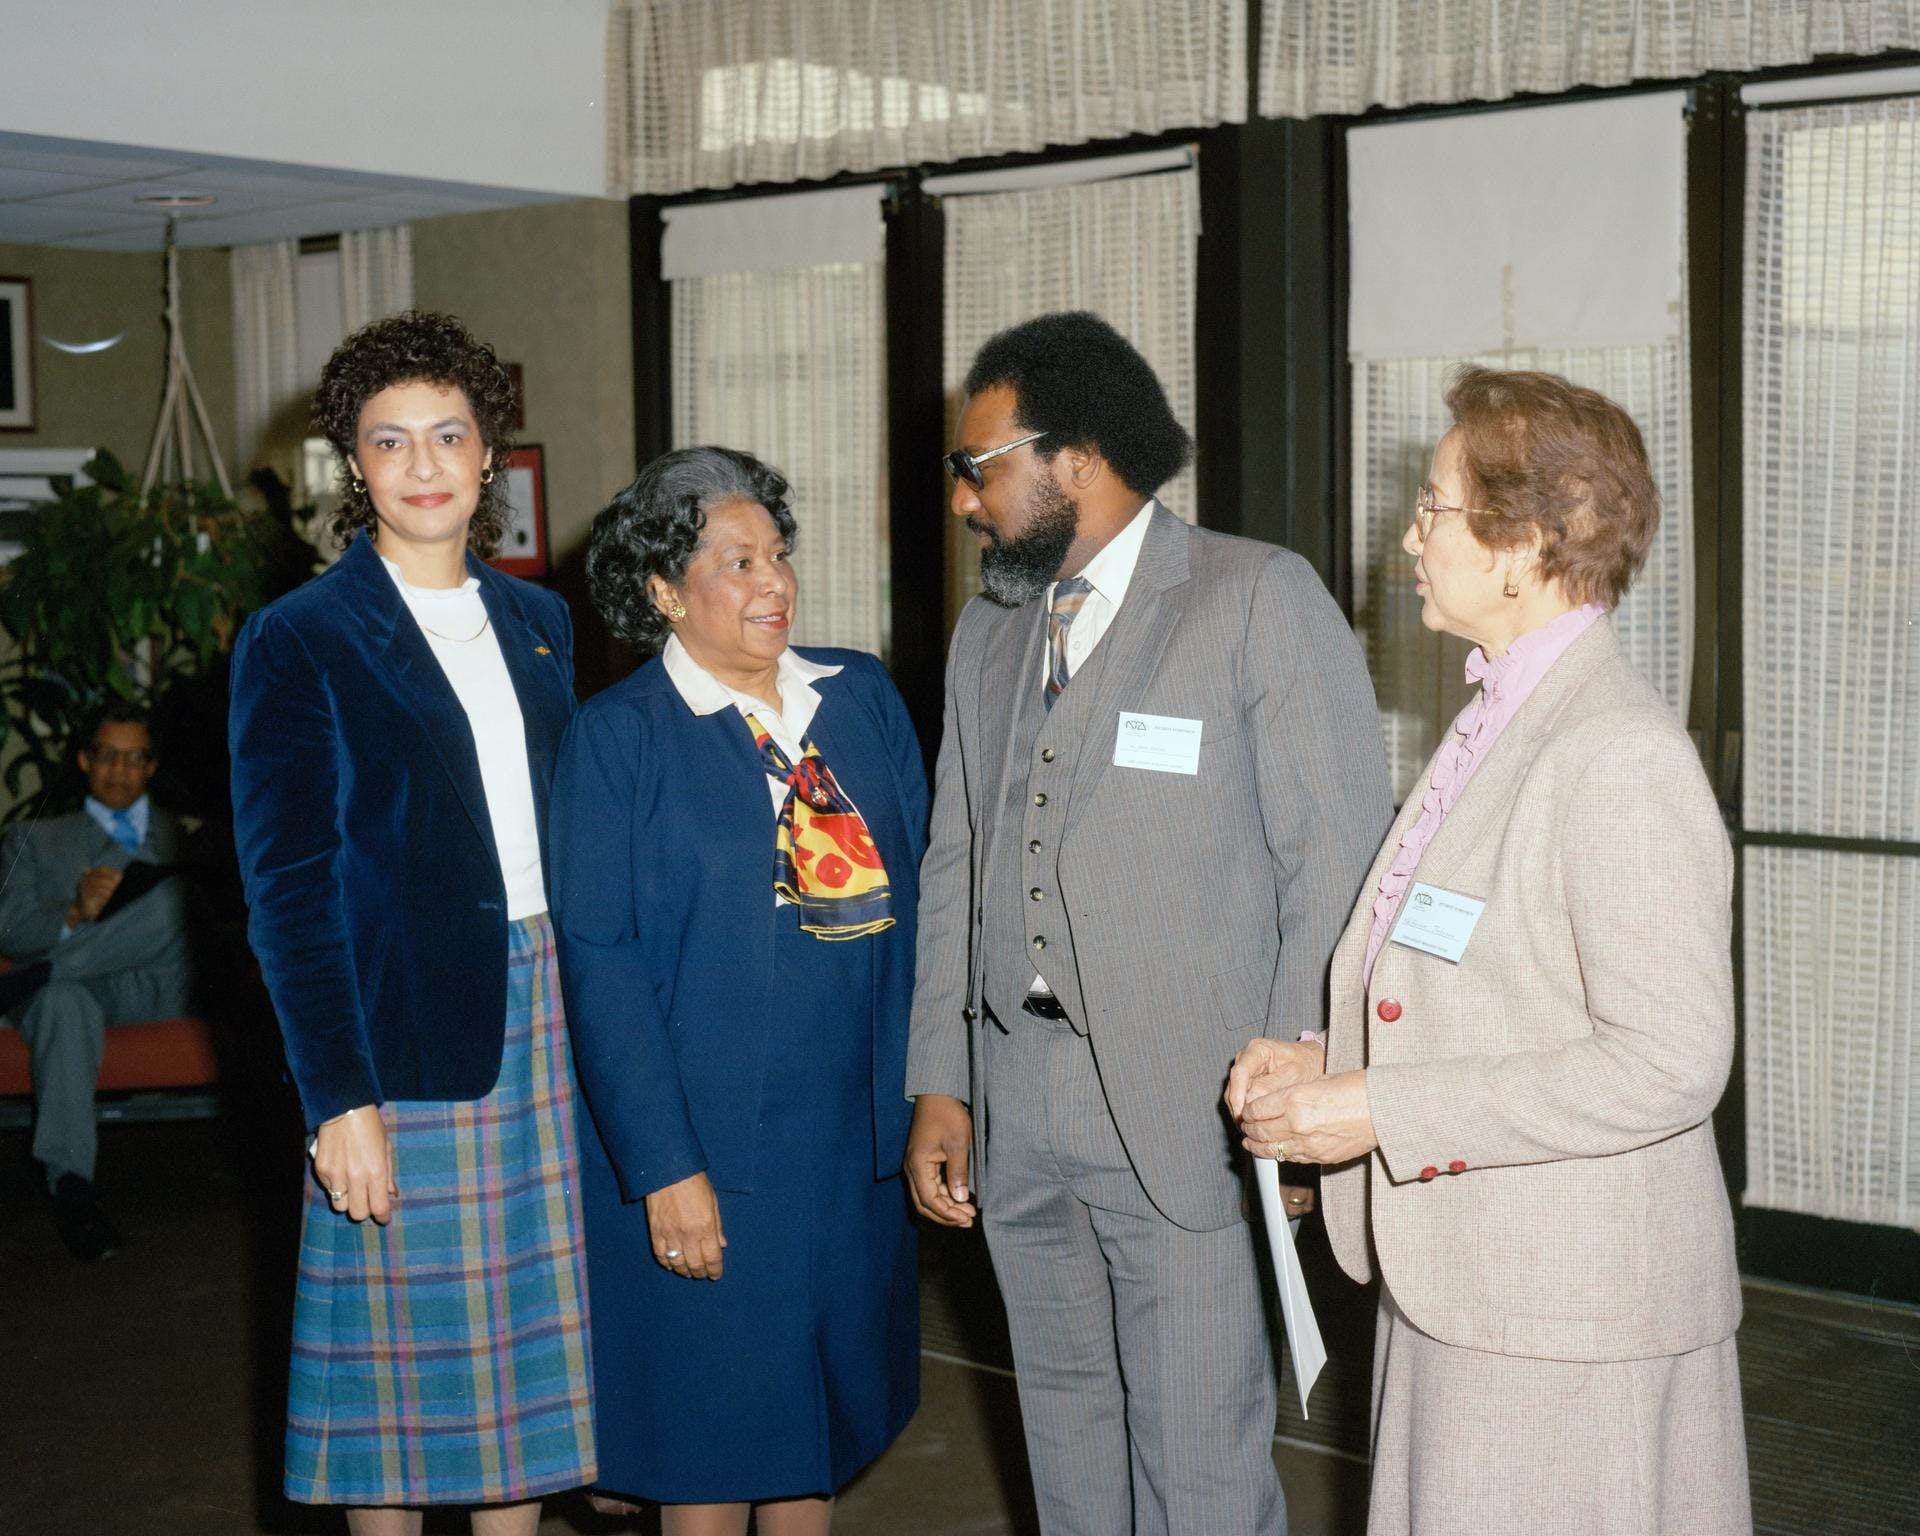 Left to right Vivian Merritt, Mary Jackson, Mr. James Jennings, and Katherine Johnson at a student symposium.